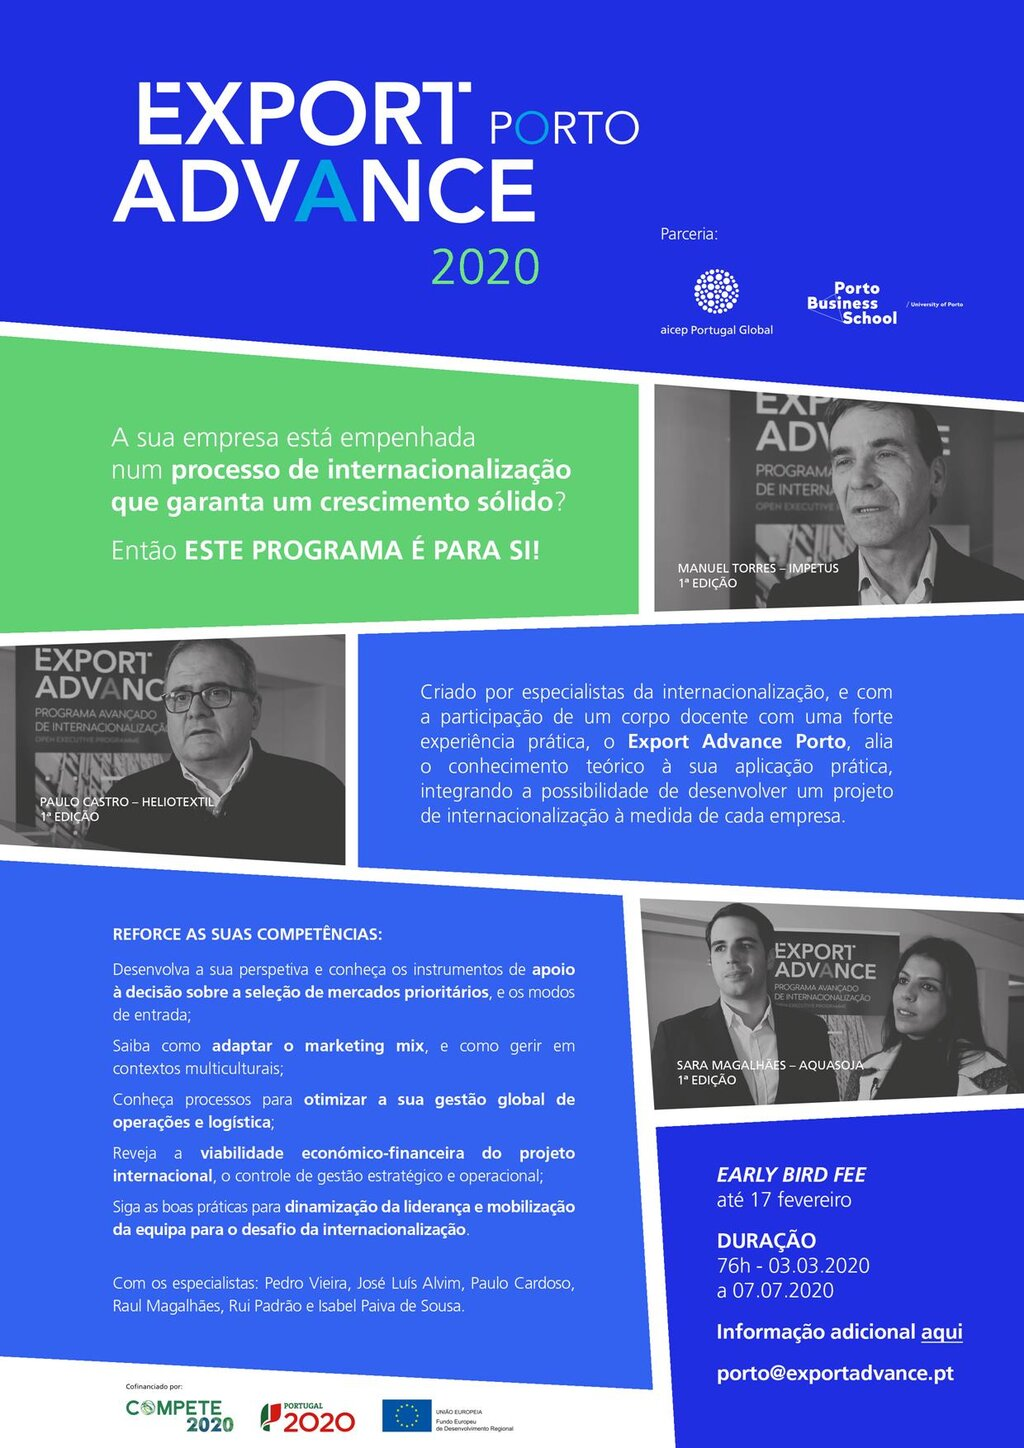 Export Advance Porto 2020 - Newsletter Fev.2020